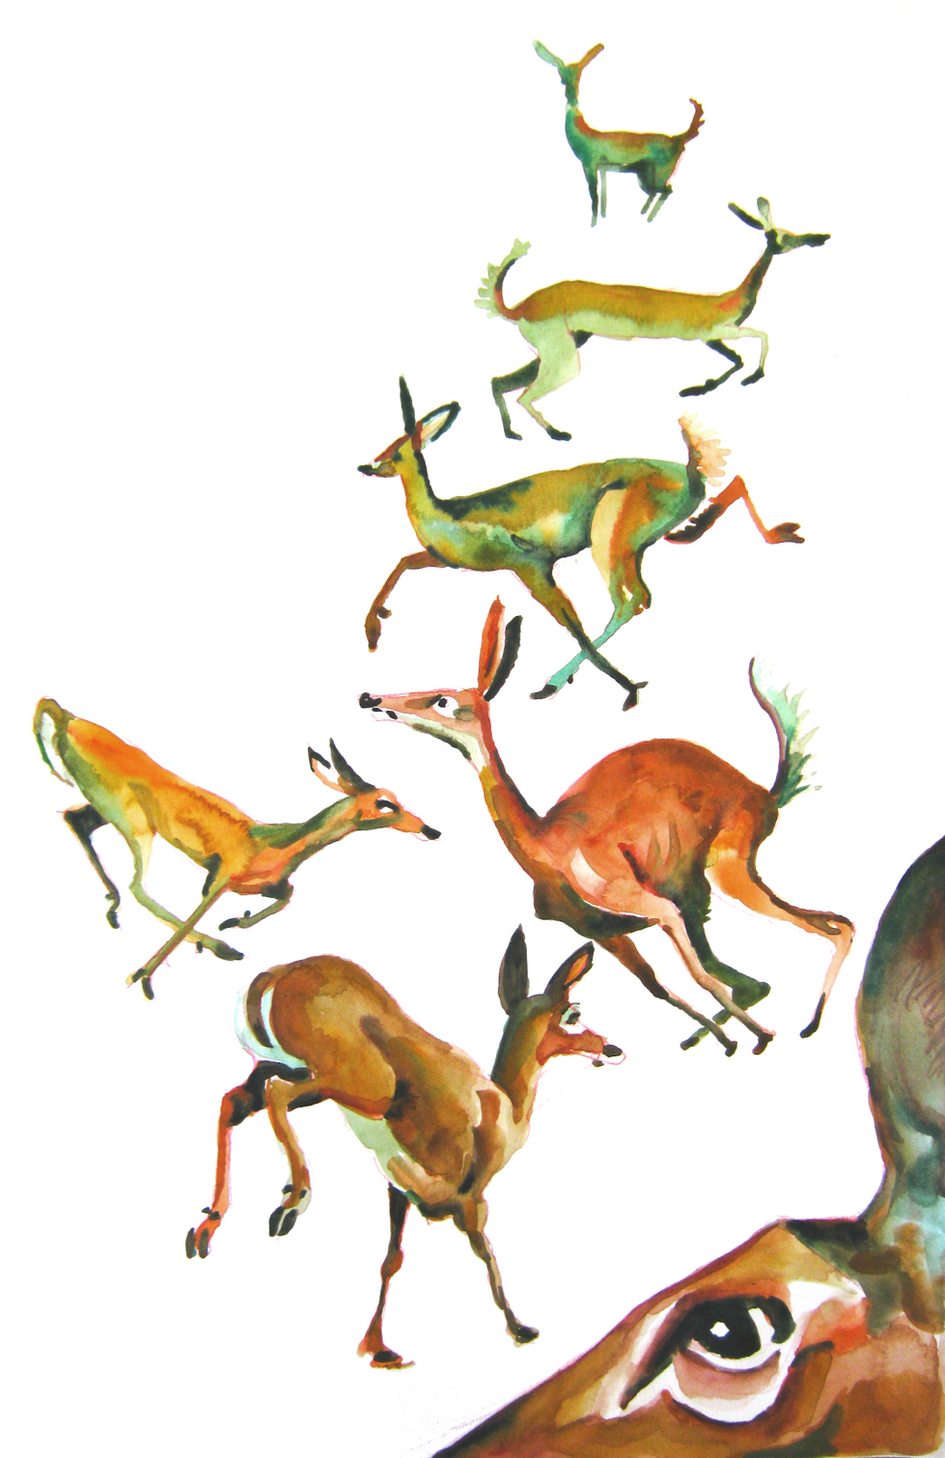 2020.11.06 deer running-b.png